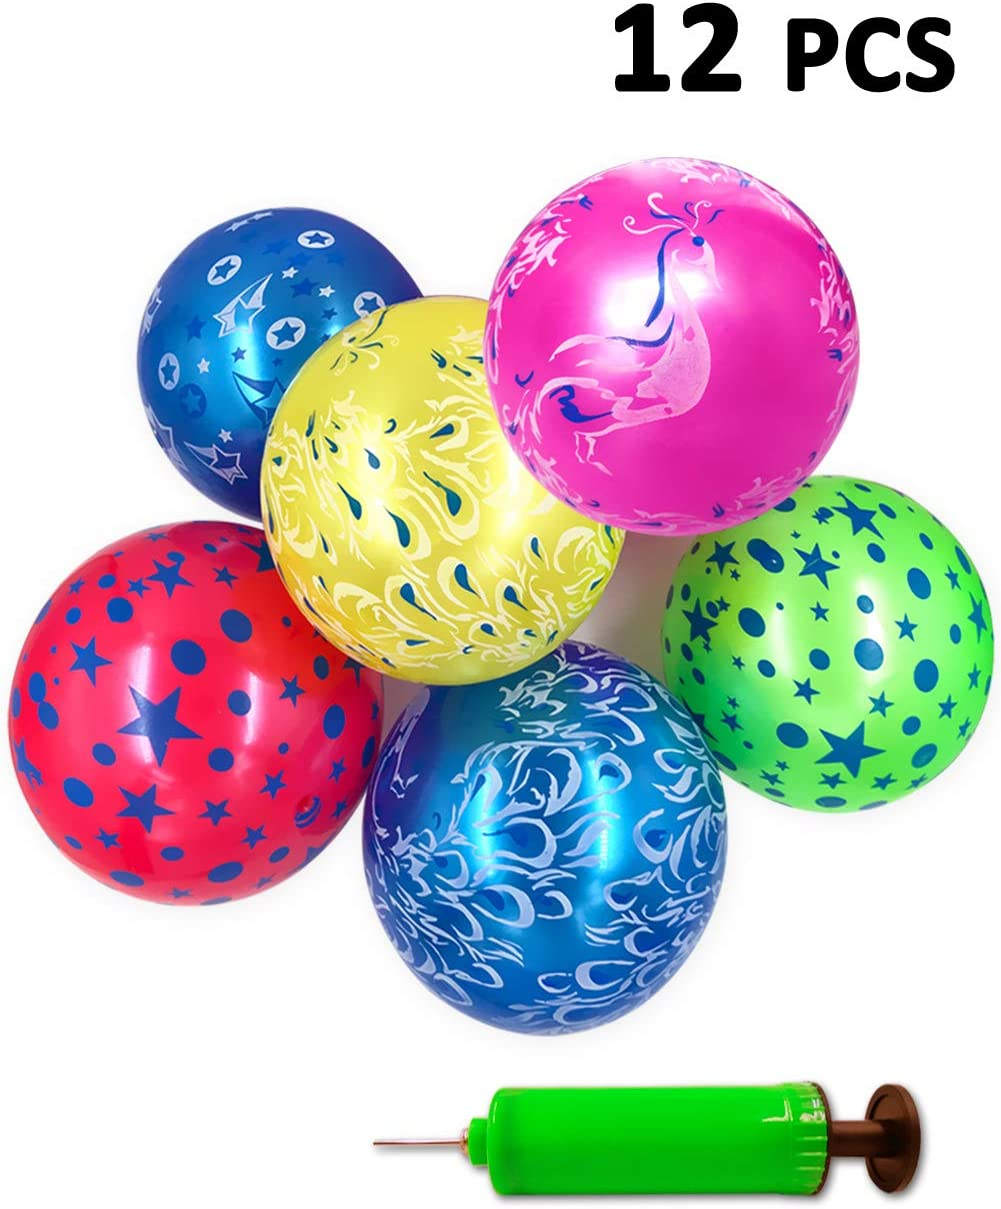 Mimgo-shop Party Favors Inflatable Beach Balls with Pump Outdoor Park and Beach Ball Toys for Adults and Kids Birthday 12 pcs